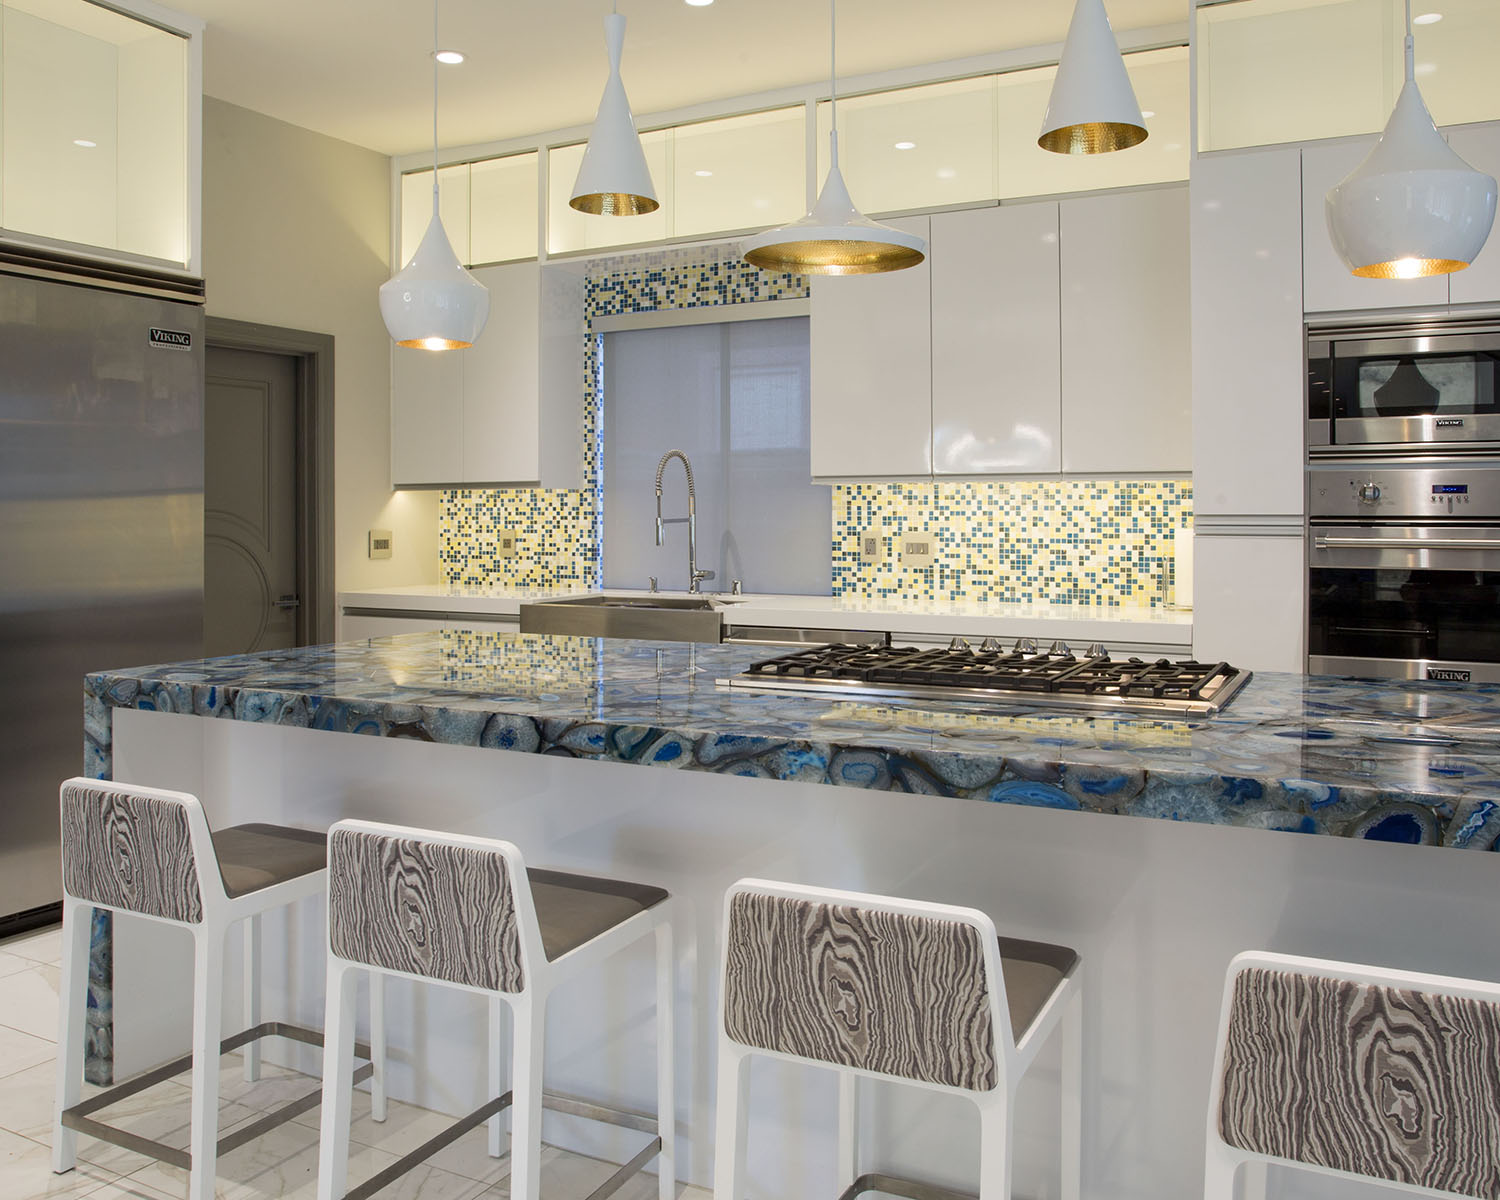 Ozzykdesigns - Contemporary Kitchen